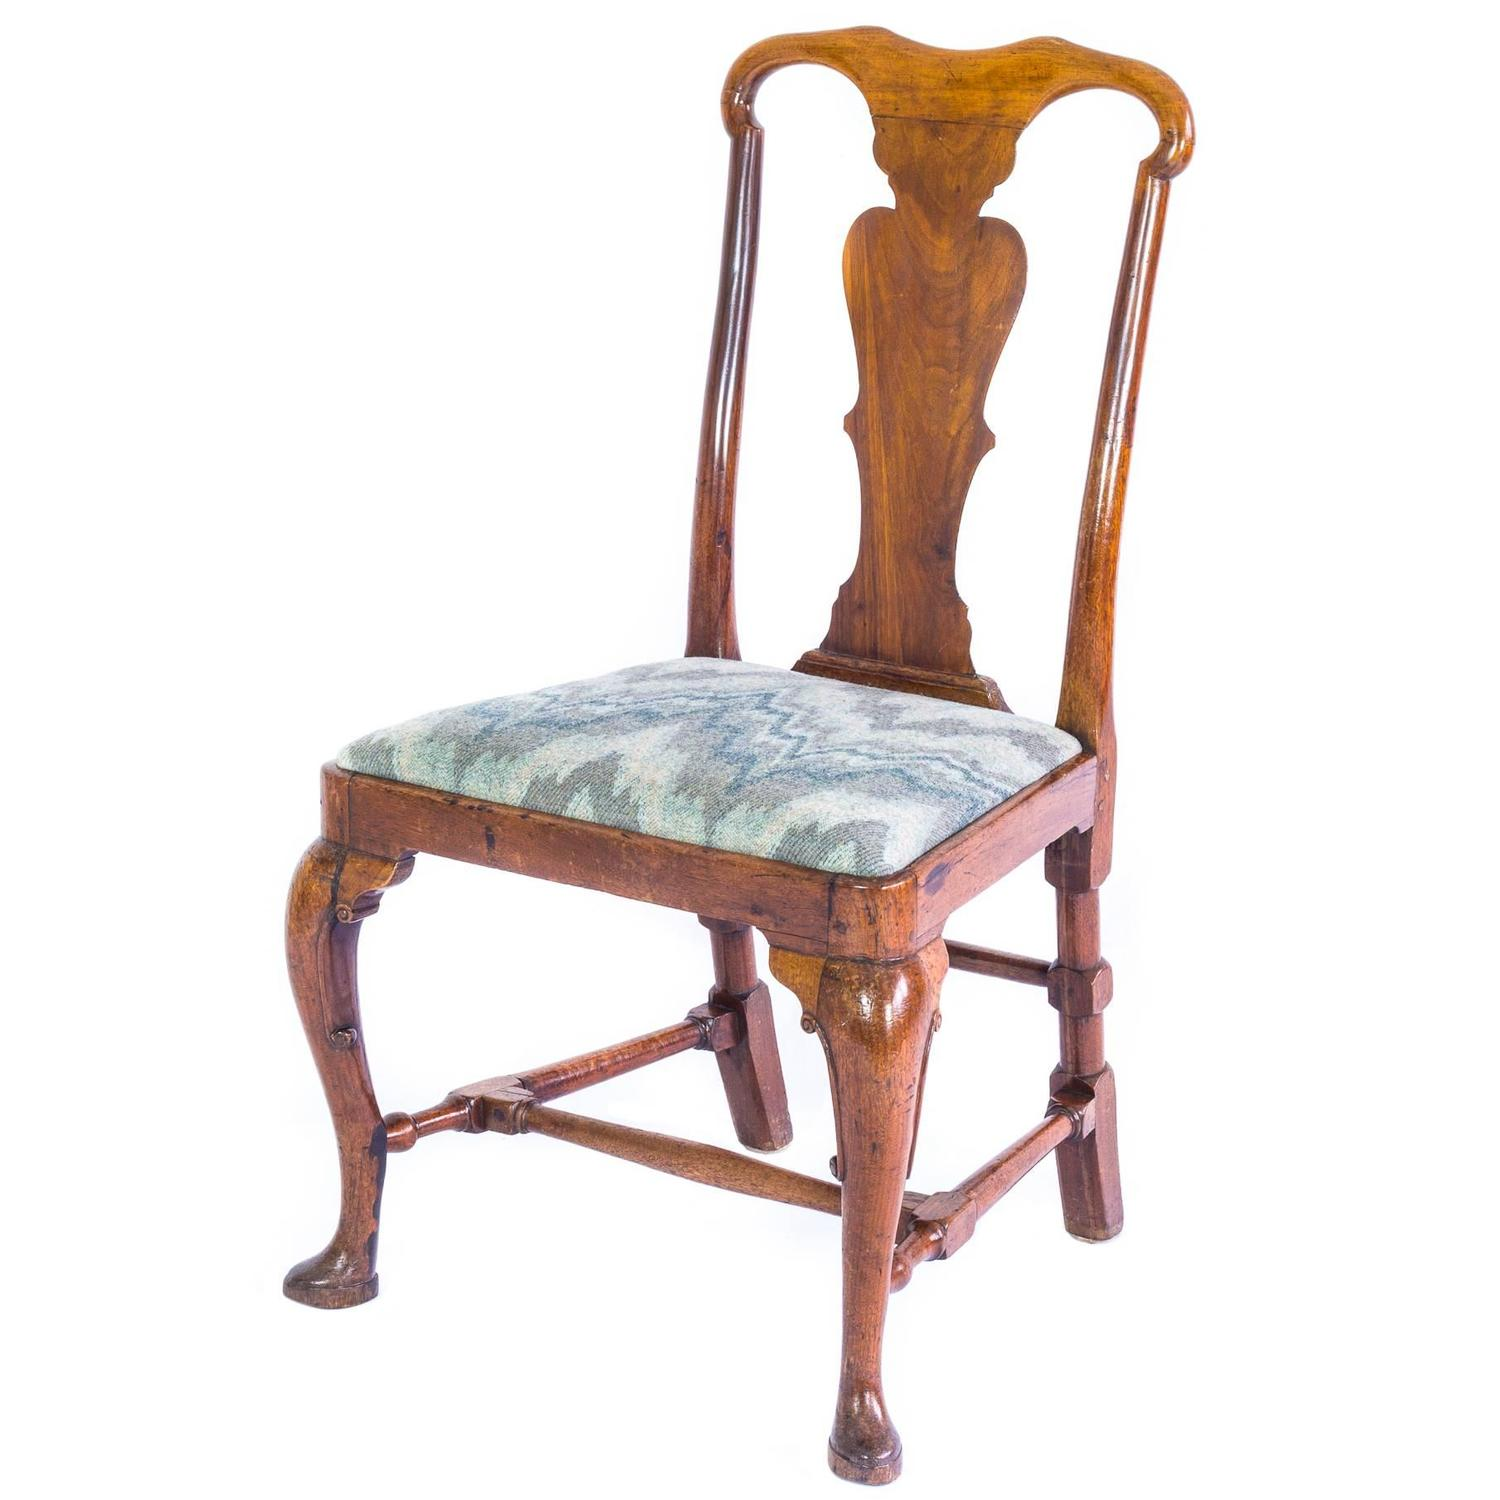 antique queen anne chair low back 18th century george i walnut at 1stdibs